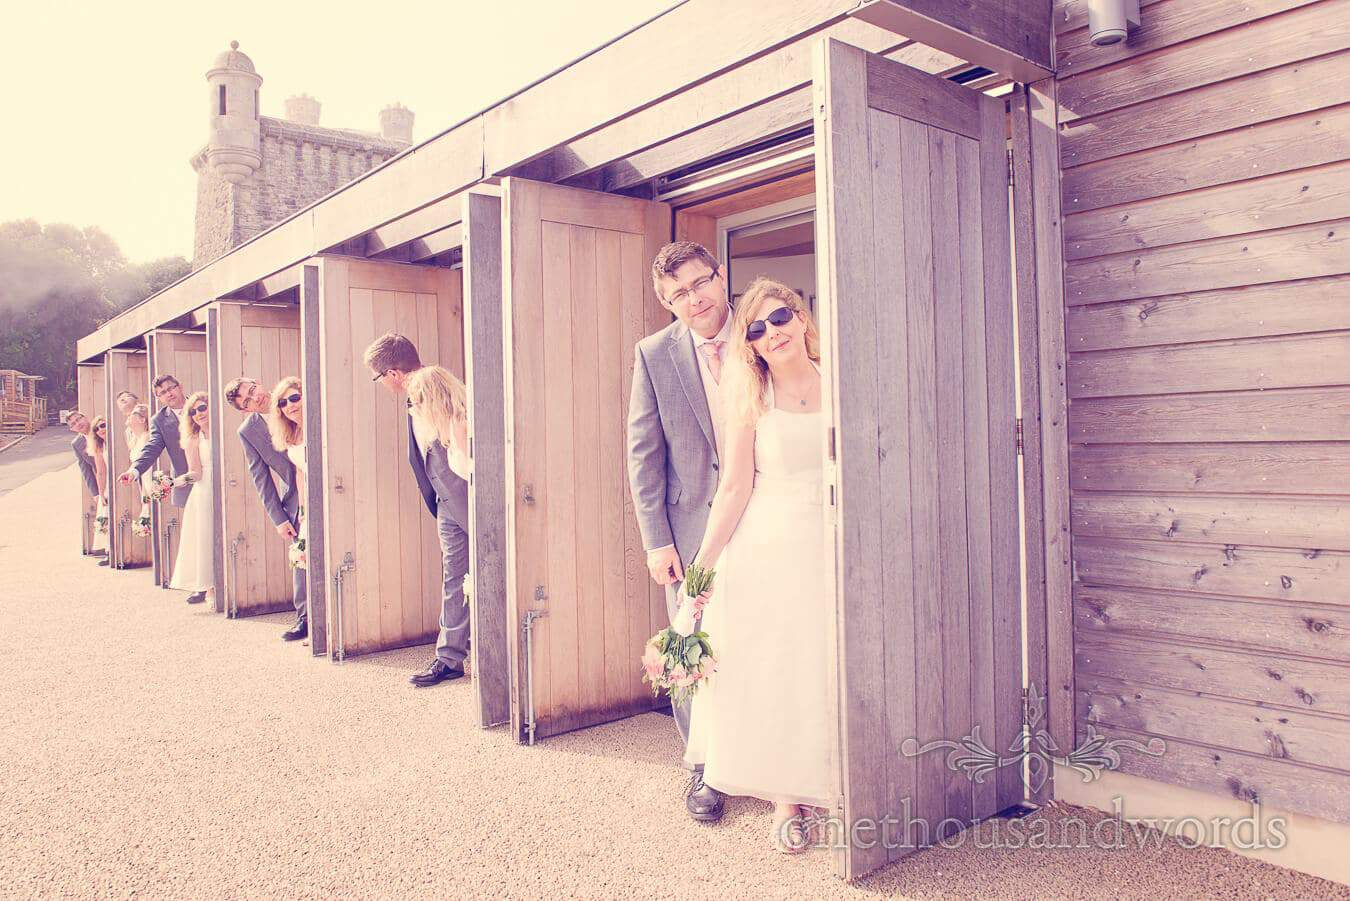 Clone the bride and groom at Durlston Castle Vintage Style Wedding